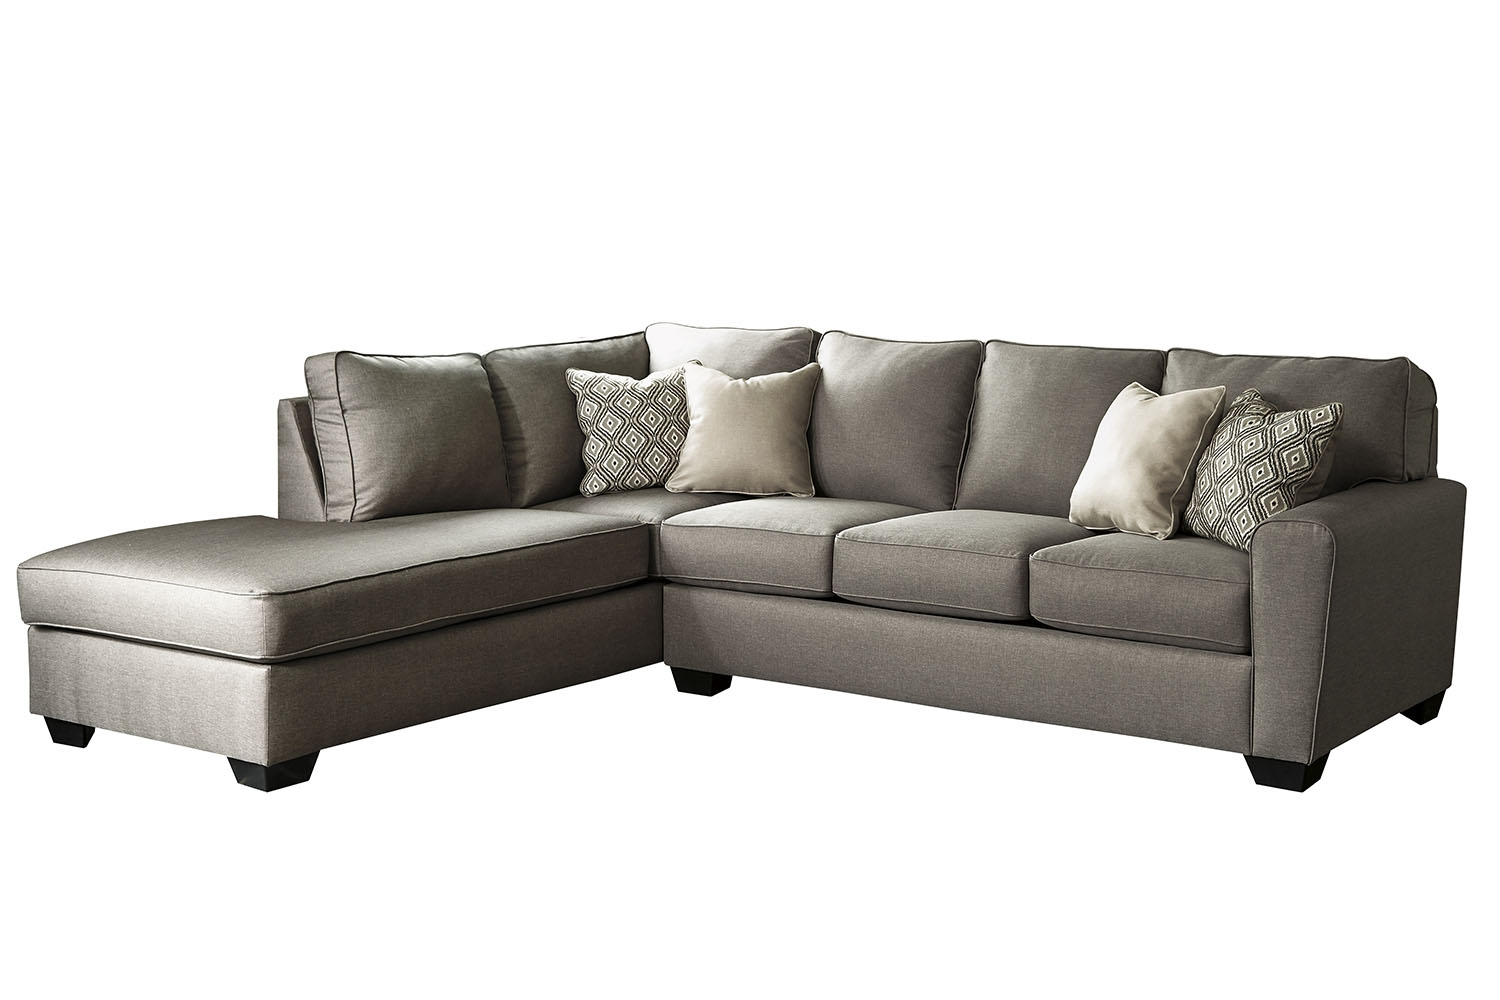 Sofa Leather Repair Toronto West Coast S Home Furniture Store Mor Furniture For Less